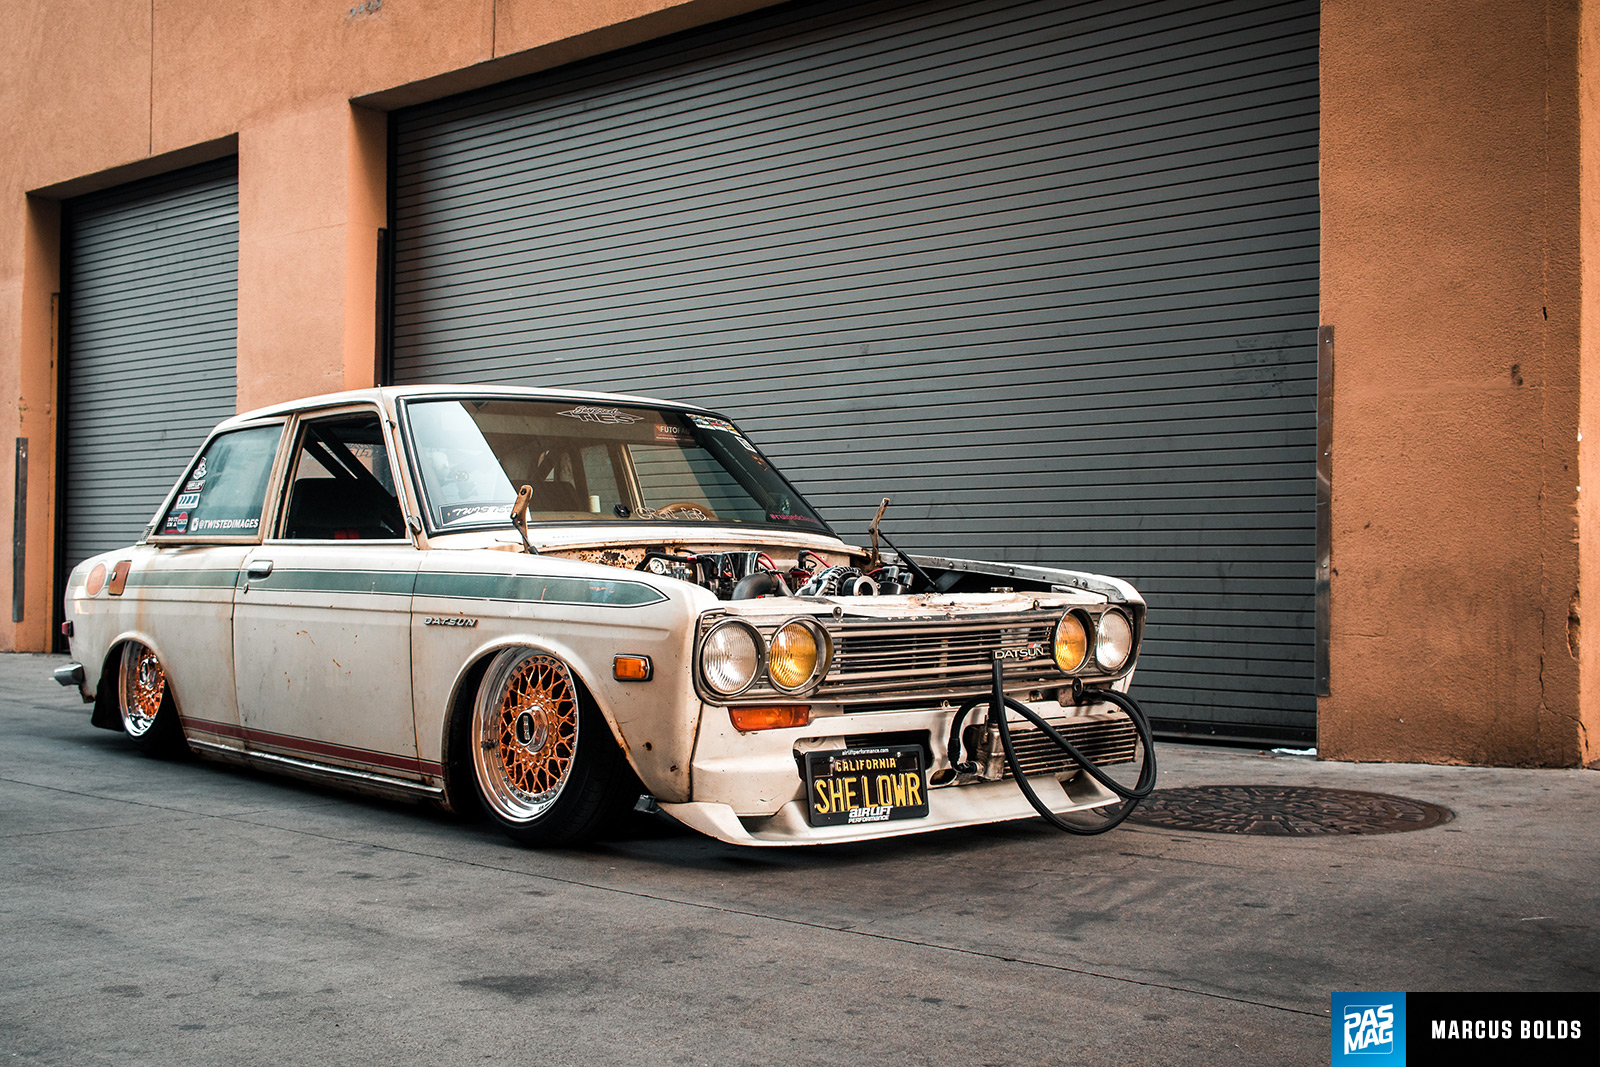 PASMAG | PERFORMANCE AUTO AND SOUND - Twisted Fantasy: A Custom ...